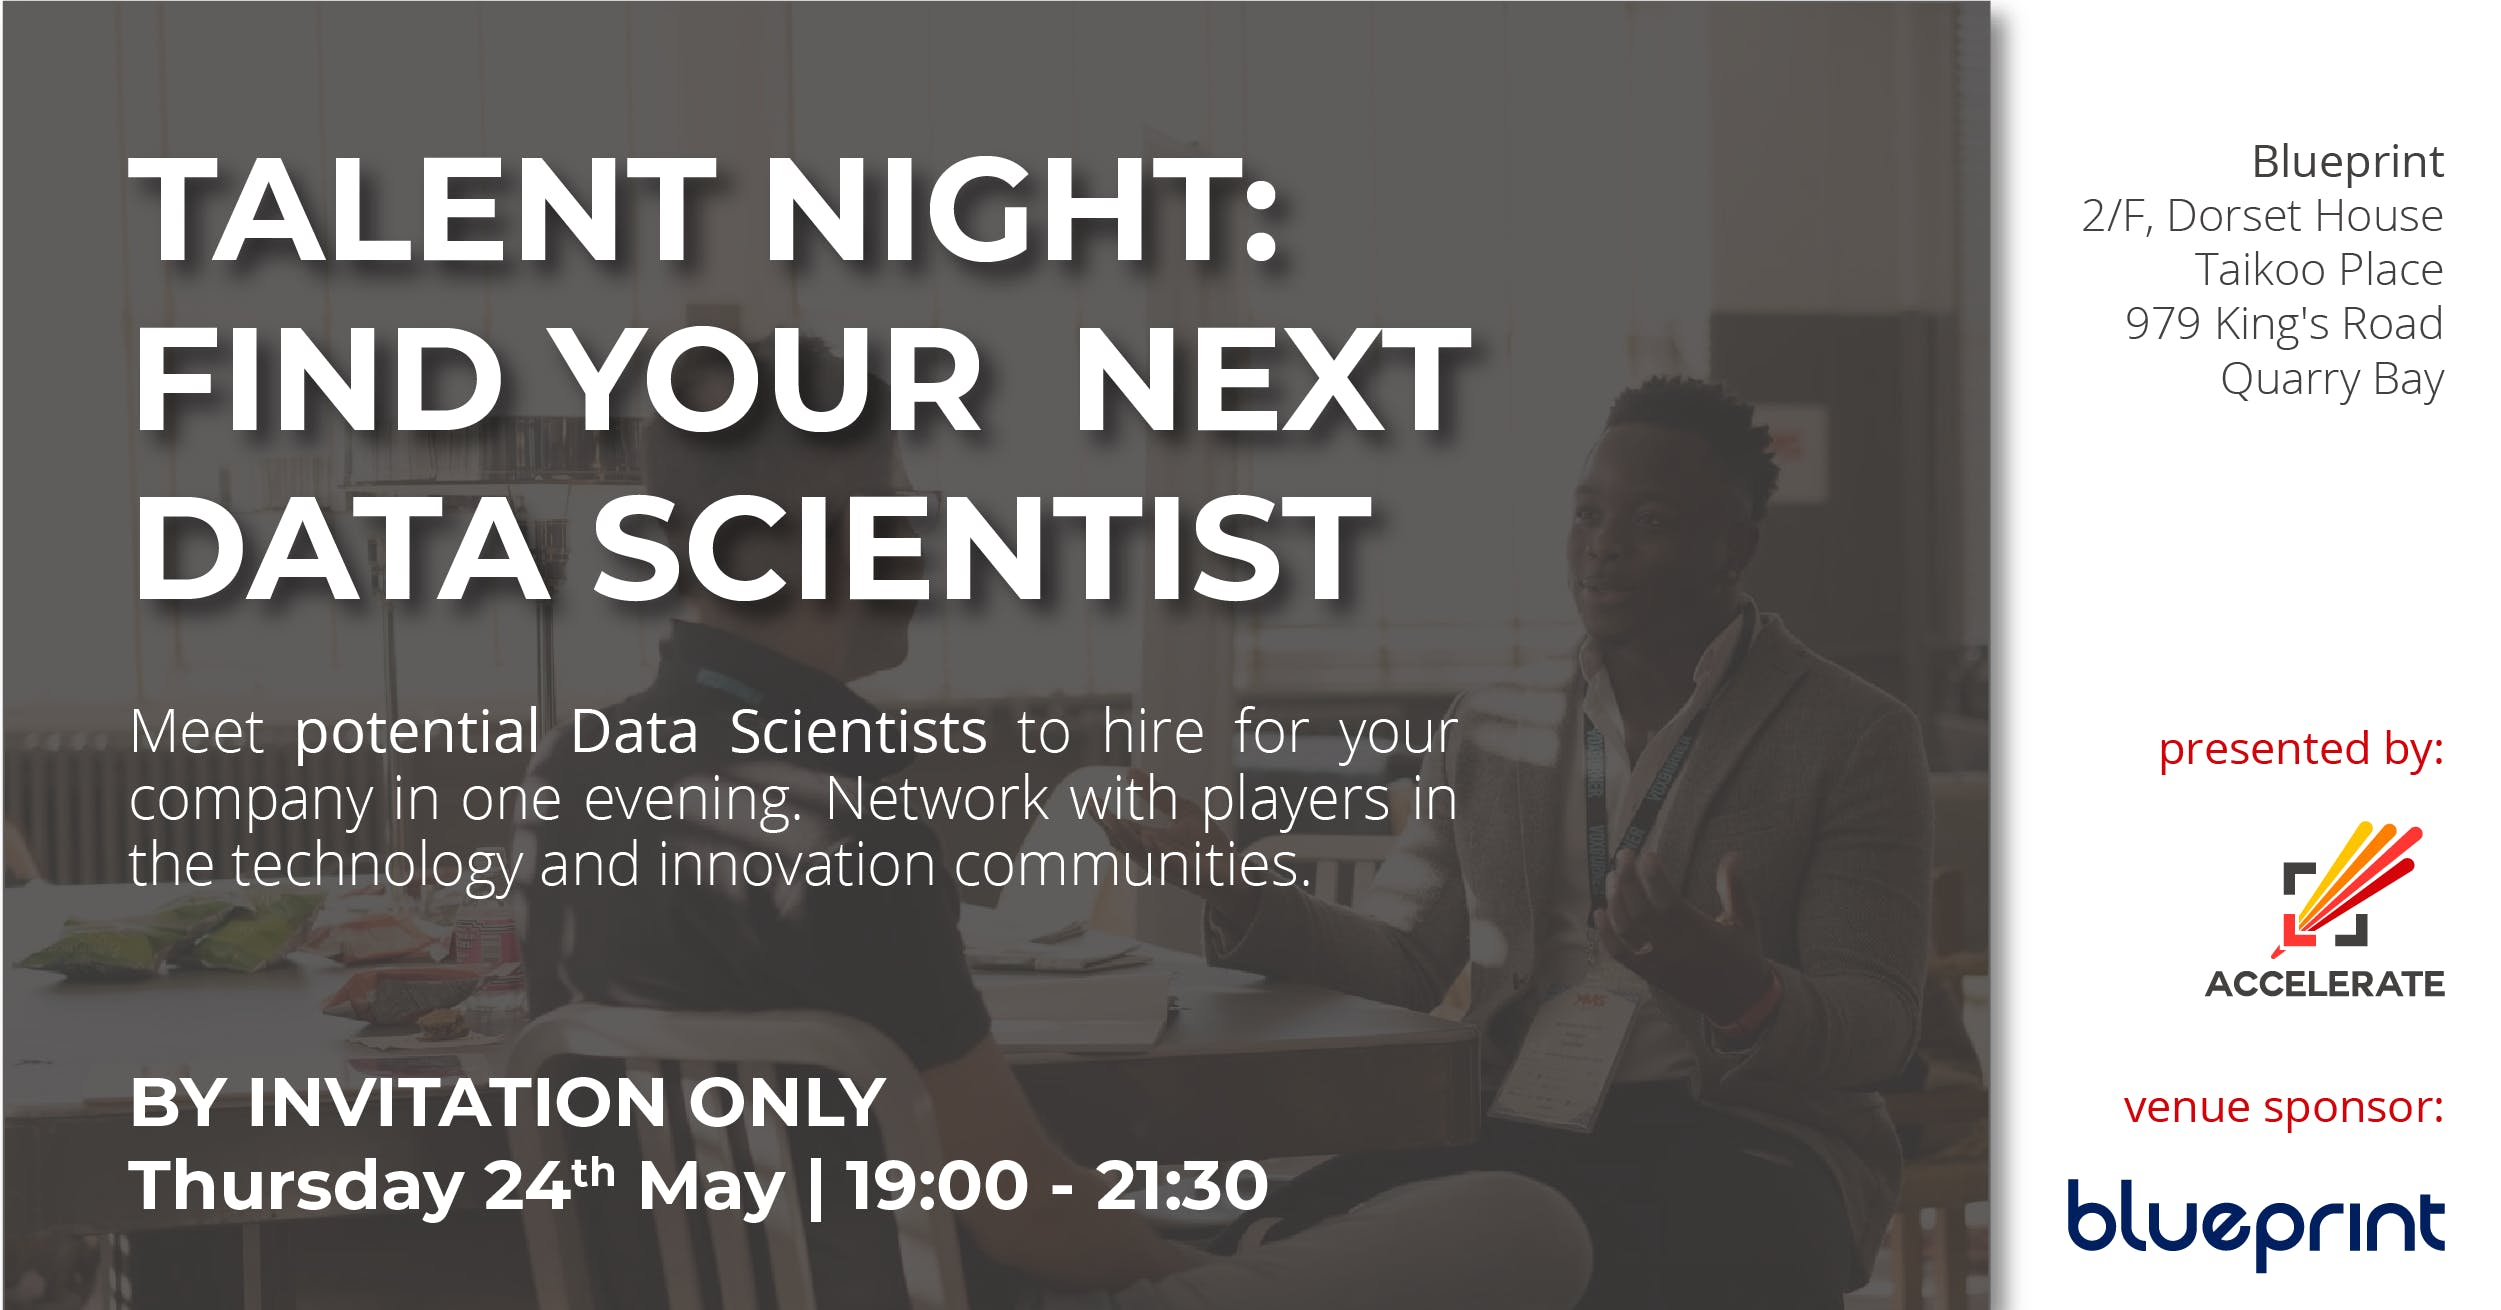 Talent night find your next data scientist 24 may 2018 talent night find your next data scientist malvernweather Gallery